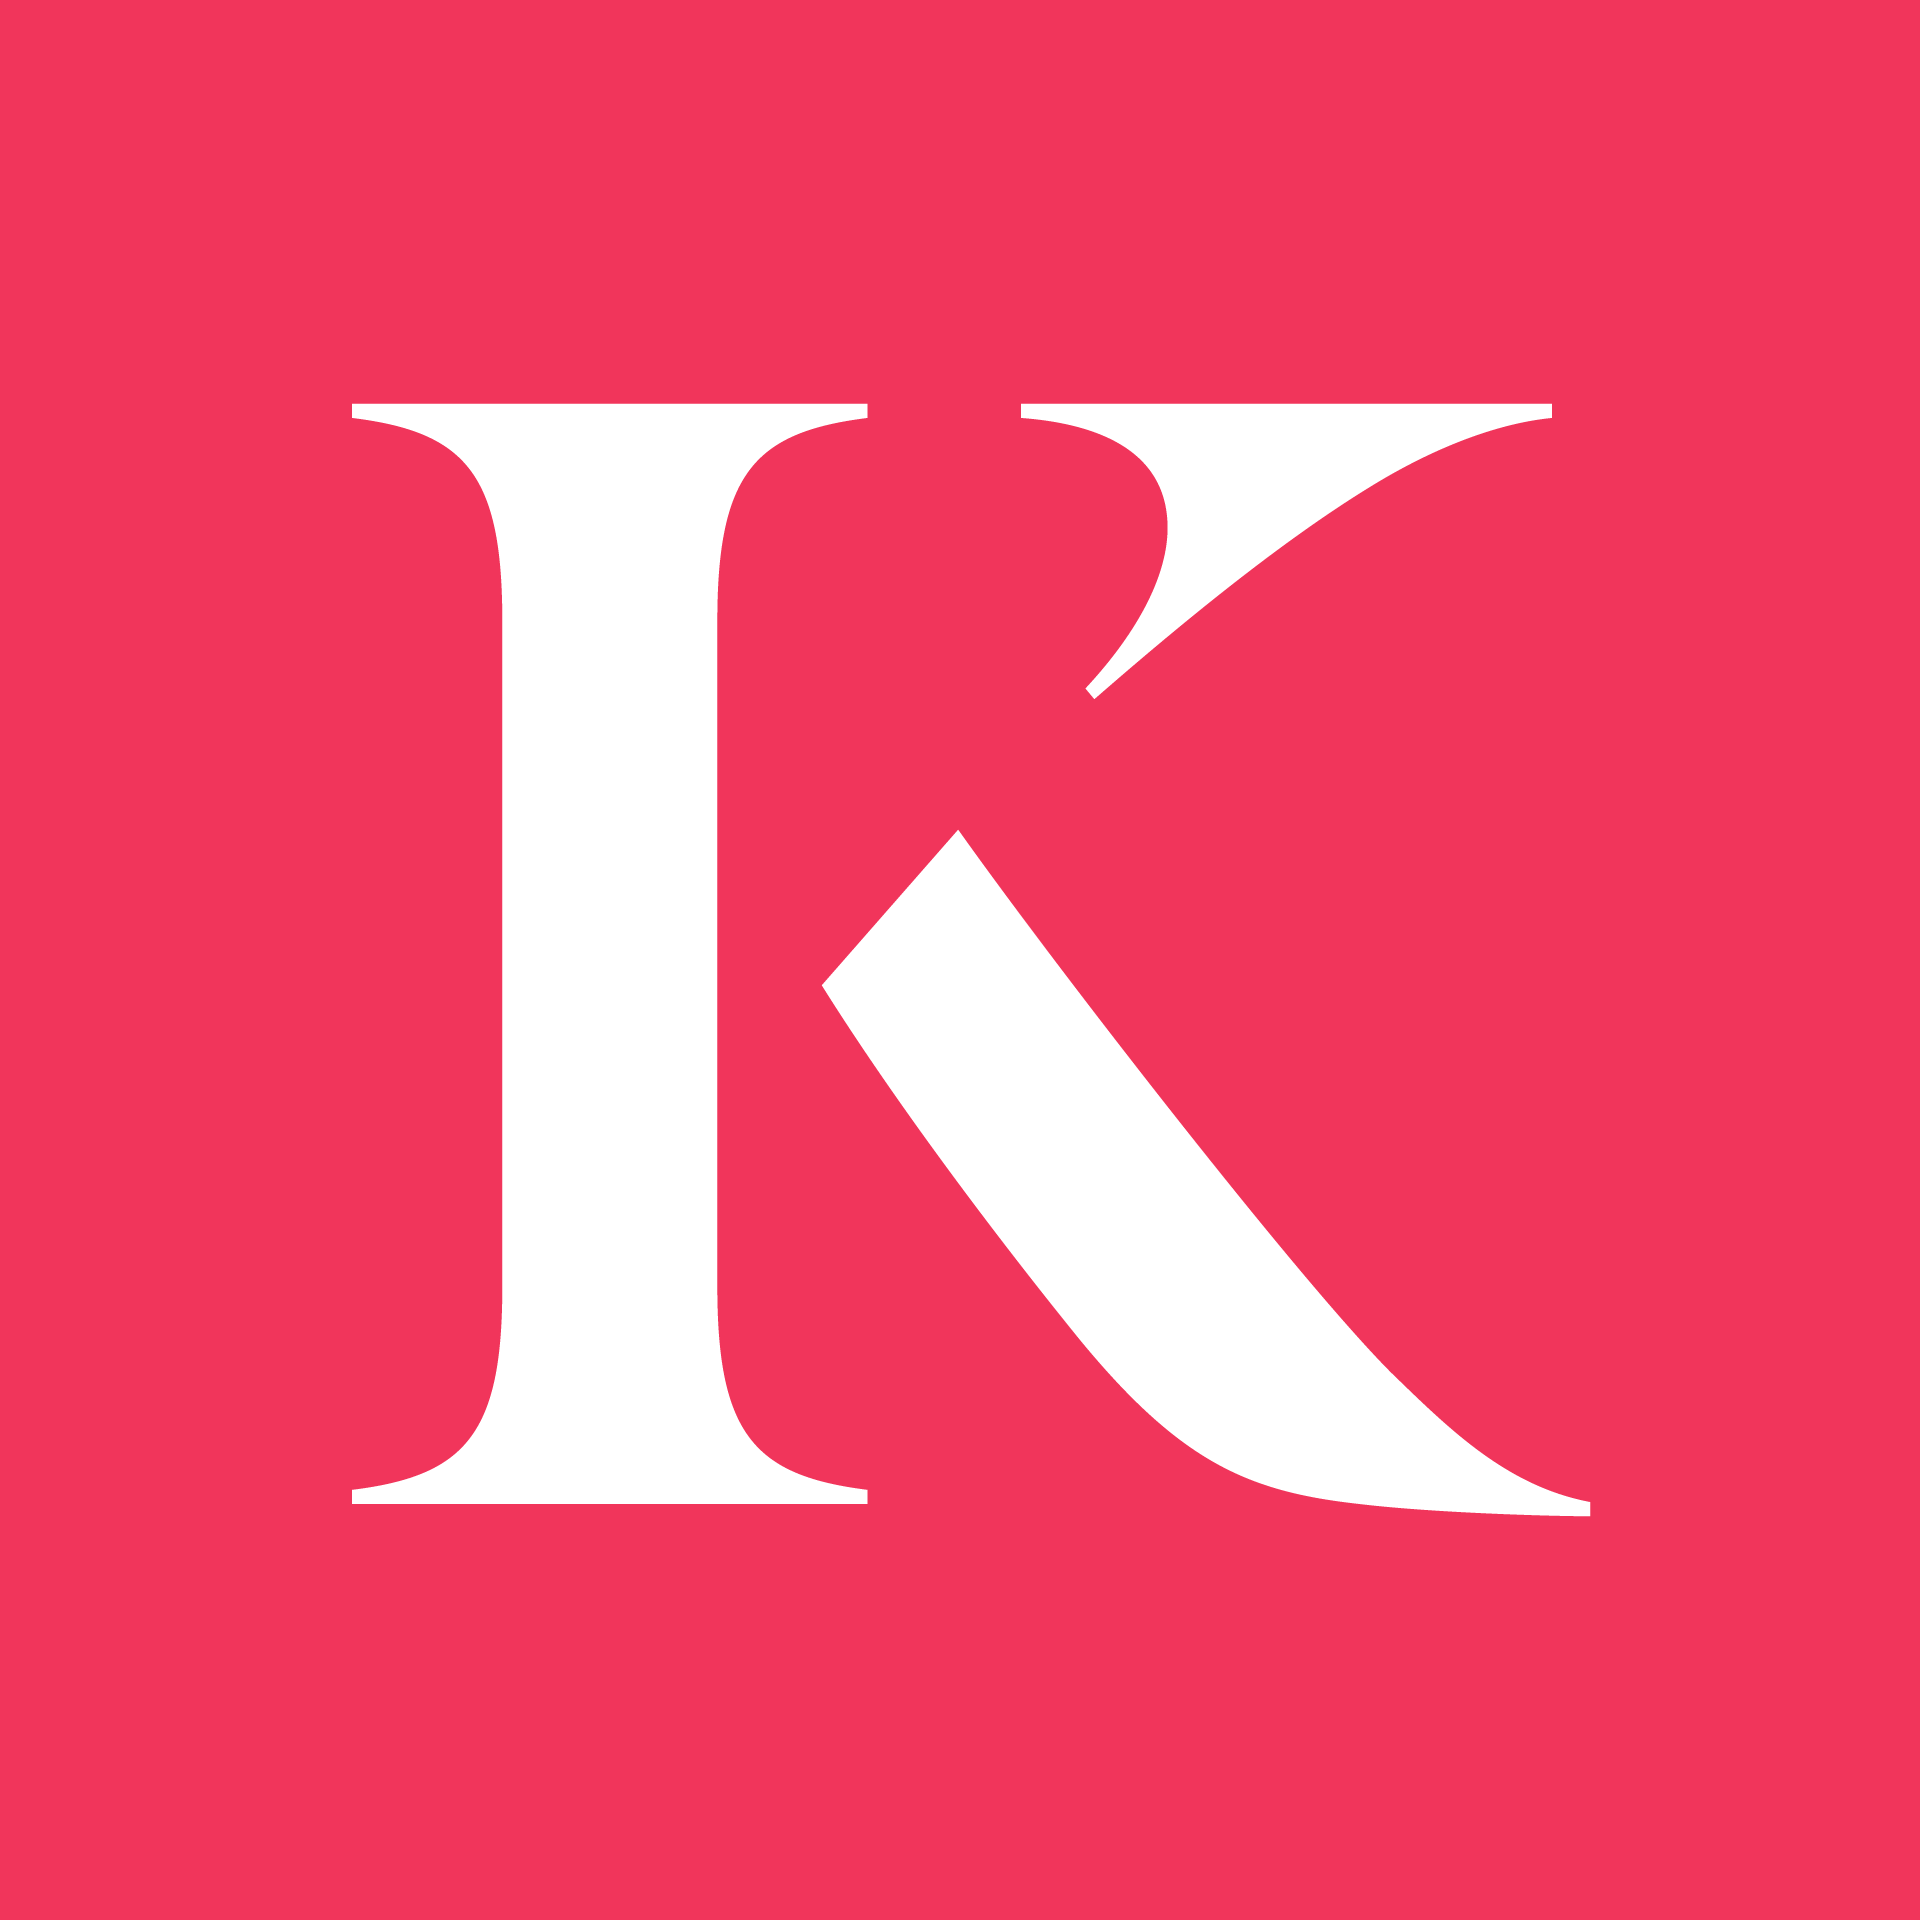 Kent Employment Solutions, LLC